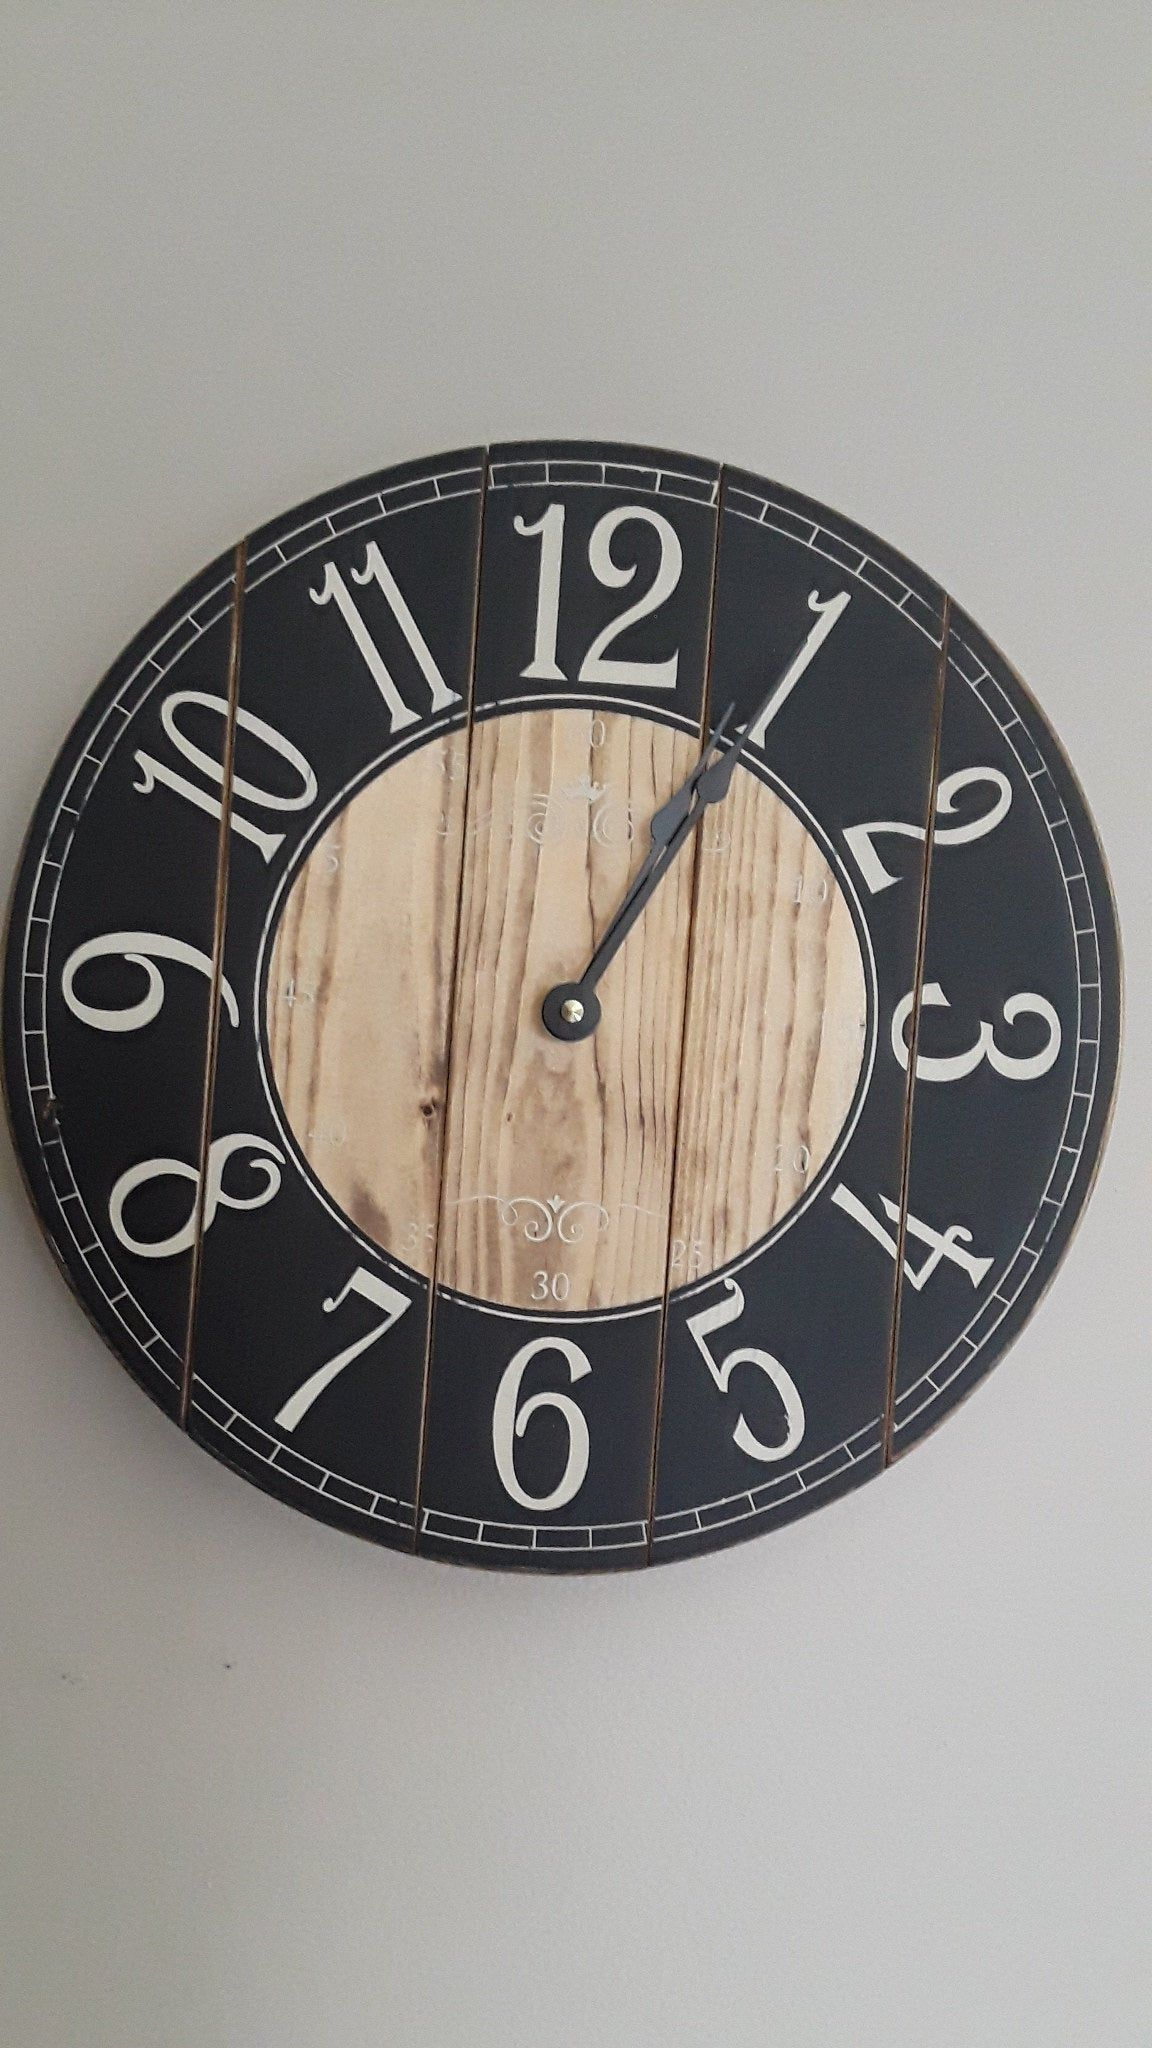 12 Inch Farmhouse Clock Small Rustic Wall Clock Unique Etsy Small Wall Clock Rustic Wall Clocks Wall Clock